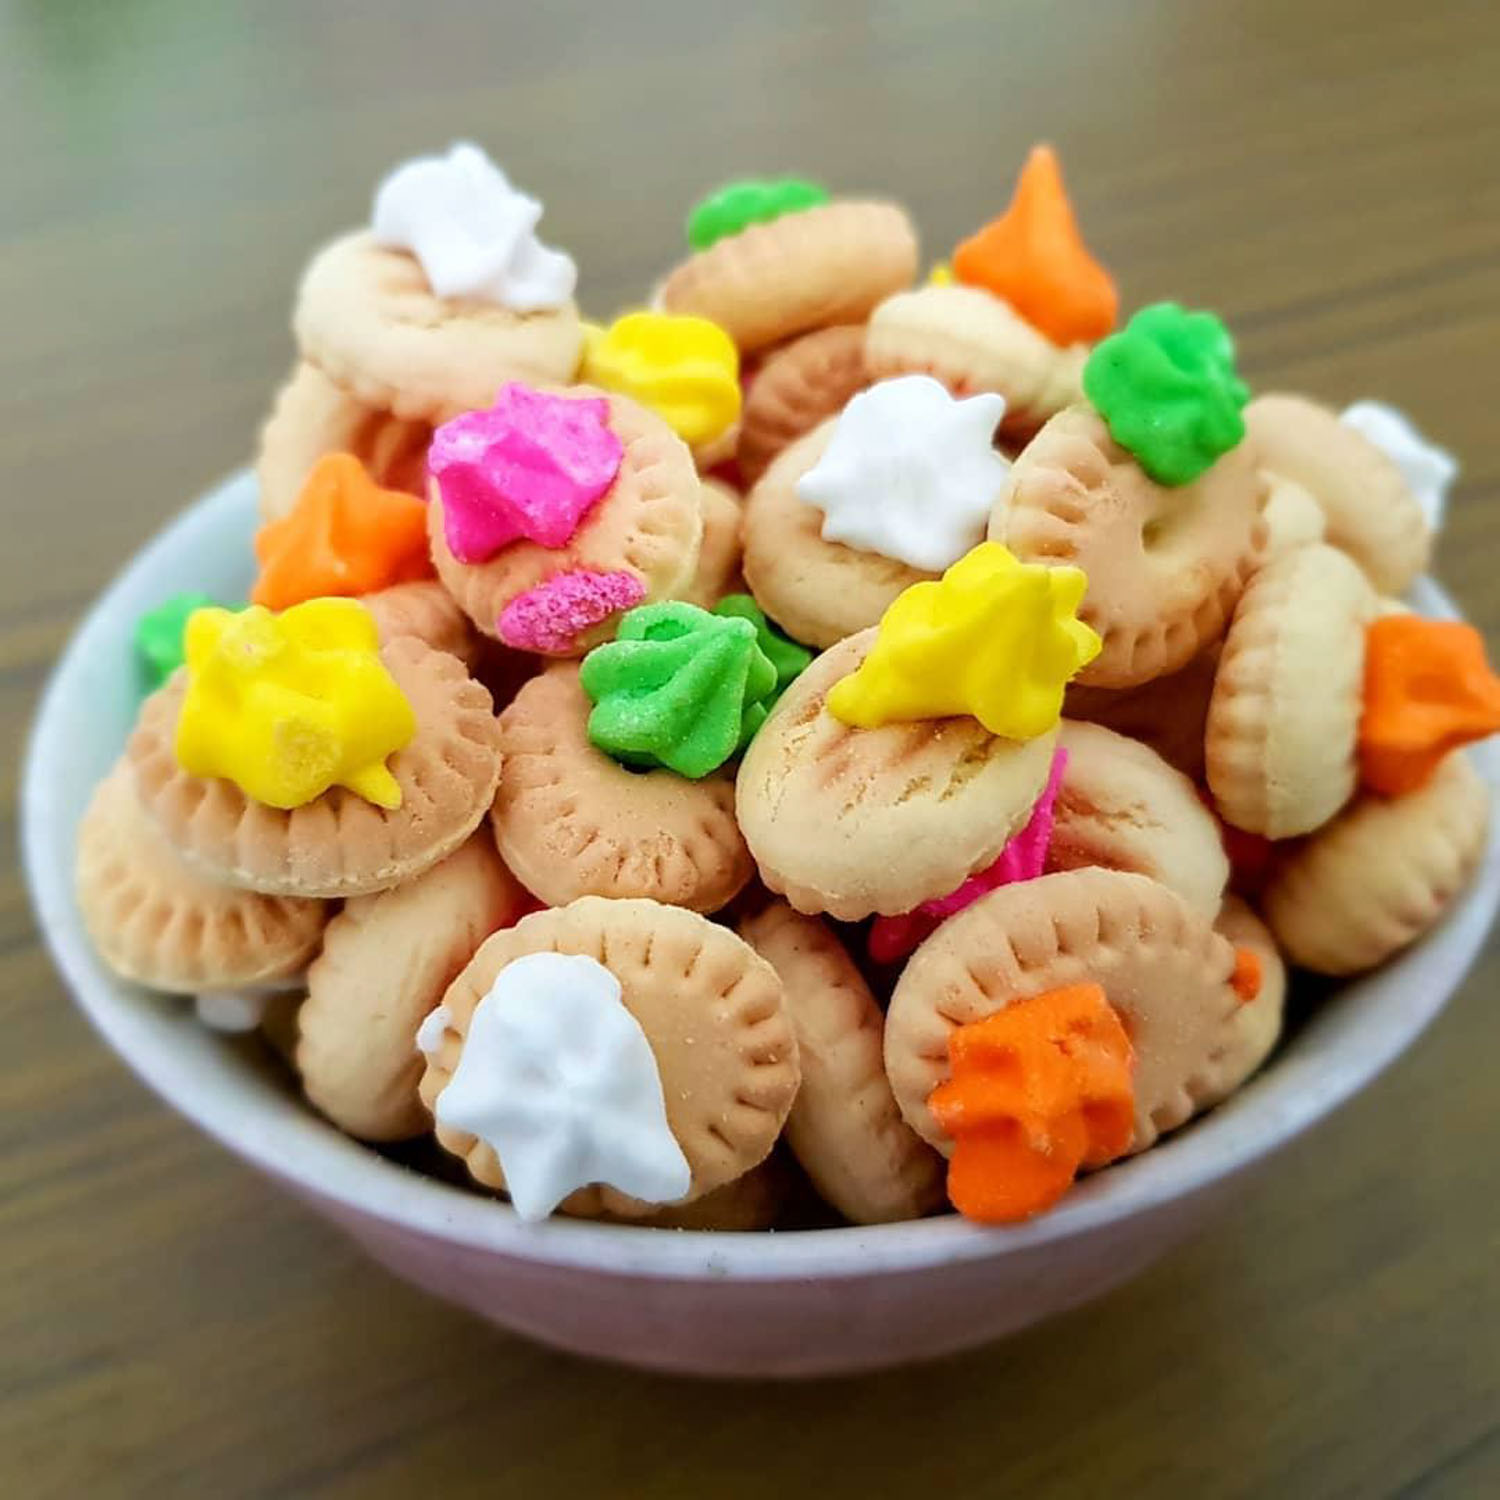 Primary School Snacks - Iced Gem Biscuits